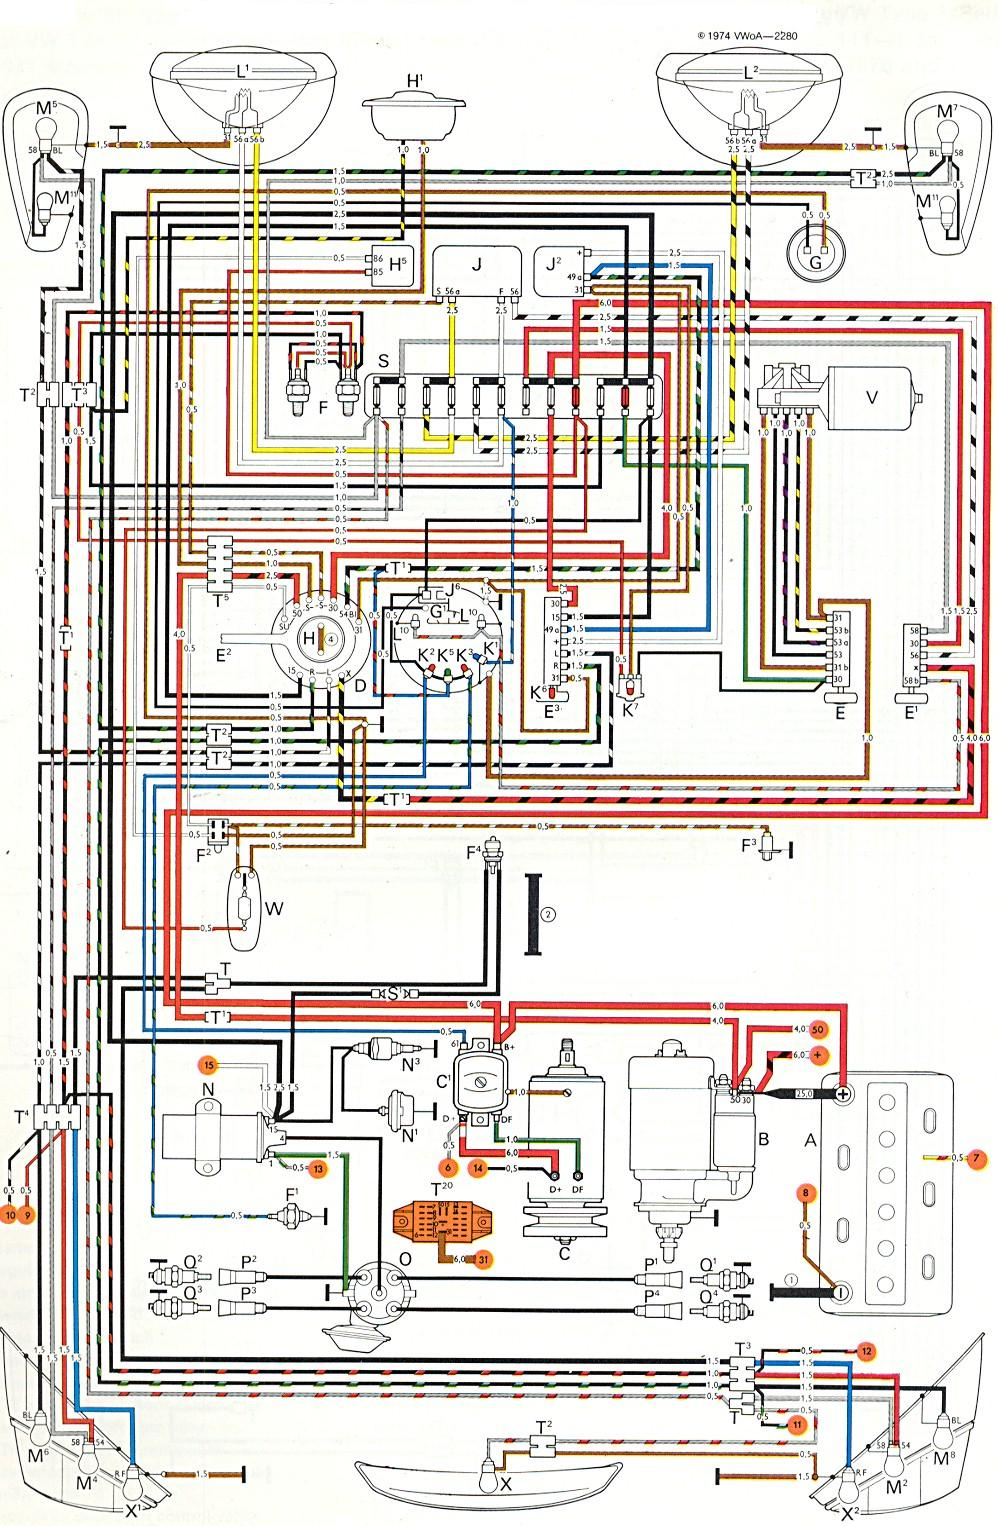 1971 super beetle wiring diagram fan dxg rakanzleiberlin de \u2022old ceiling fan wiring diagram best wiring library rh 69 ilahidinle be